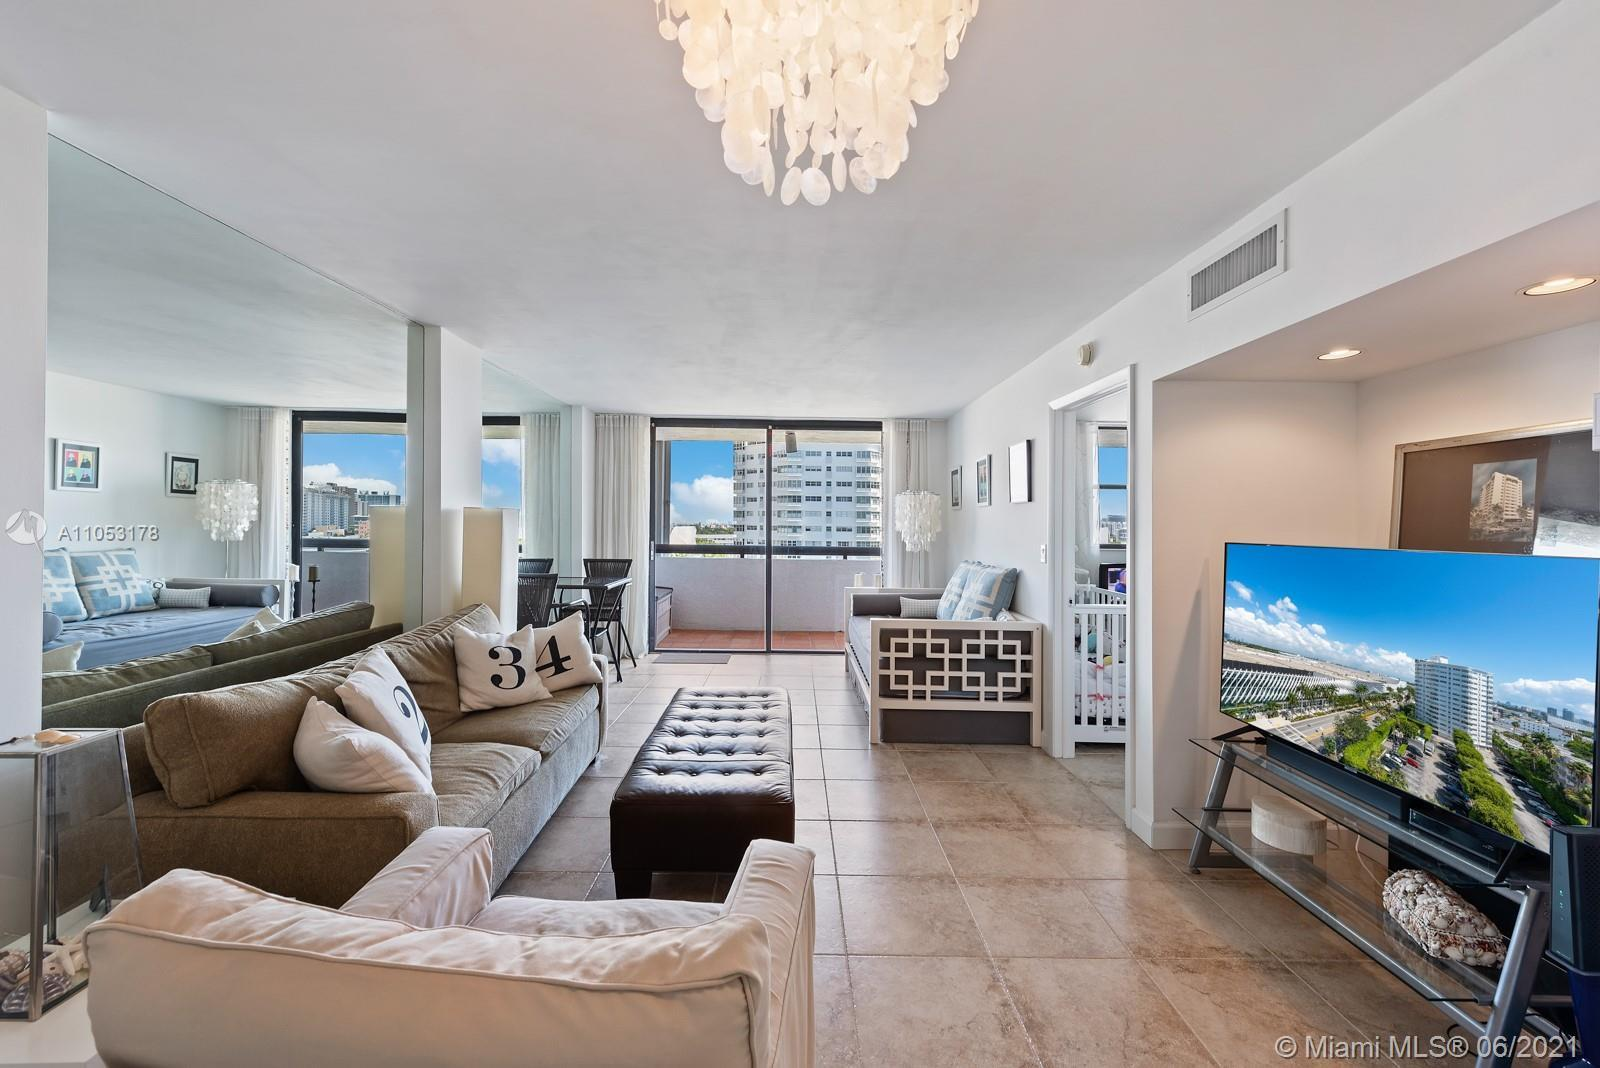 The perfect pied-a-terre in South Beach located between the ocean and Lincoln Road. Parc Plaza Resid